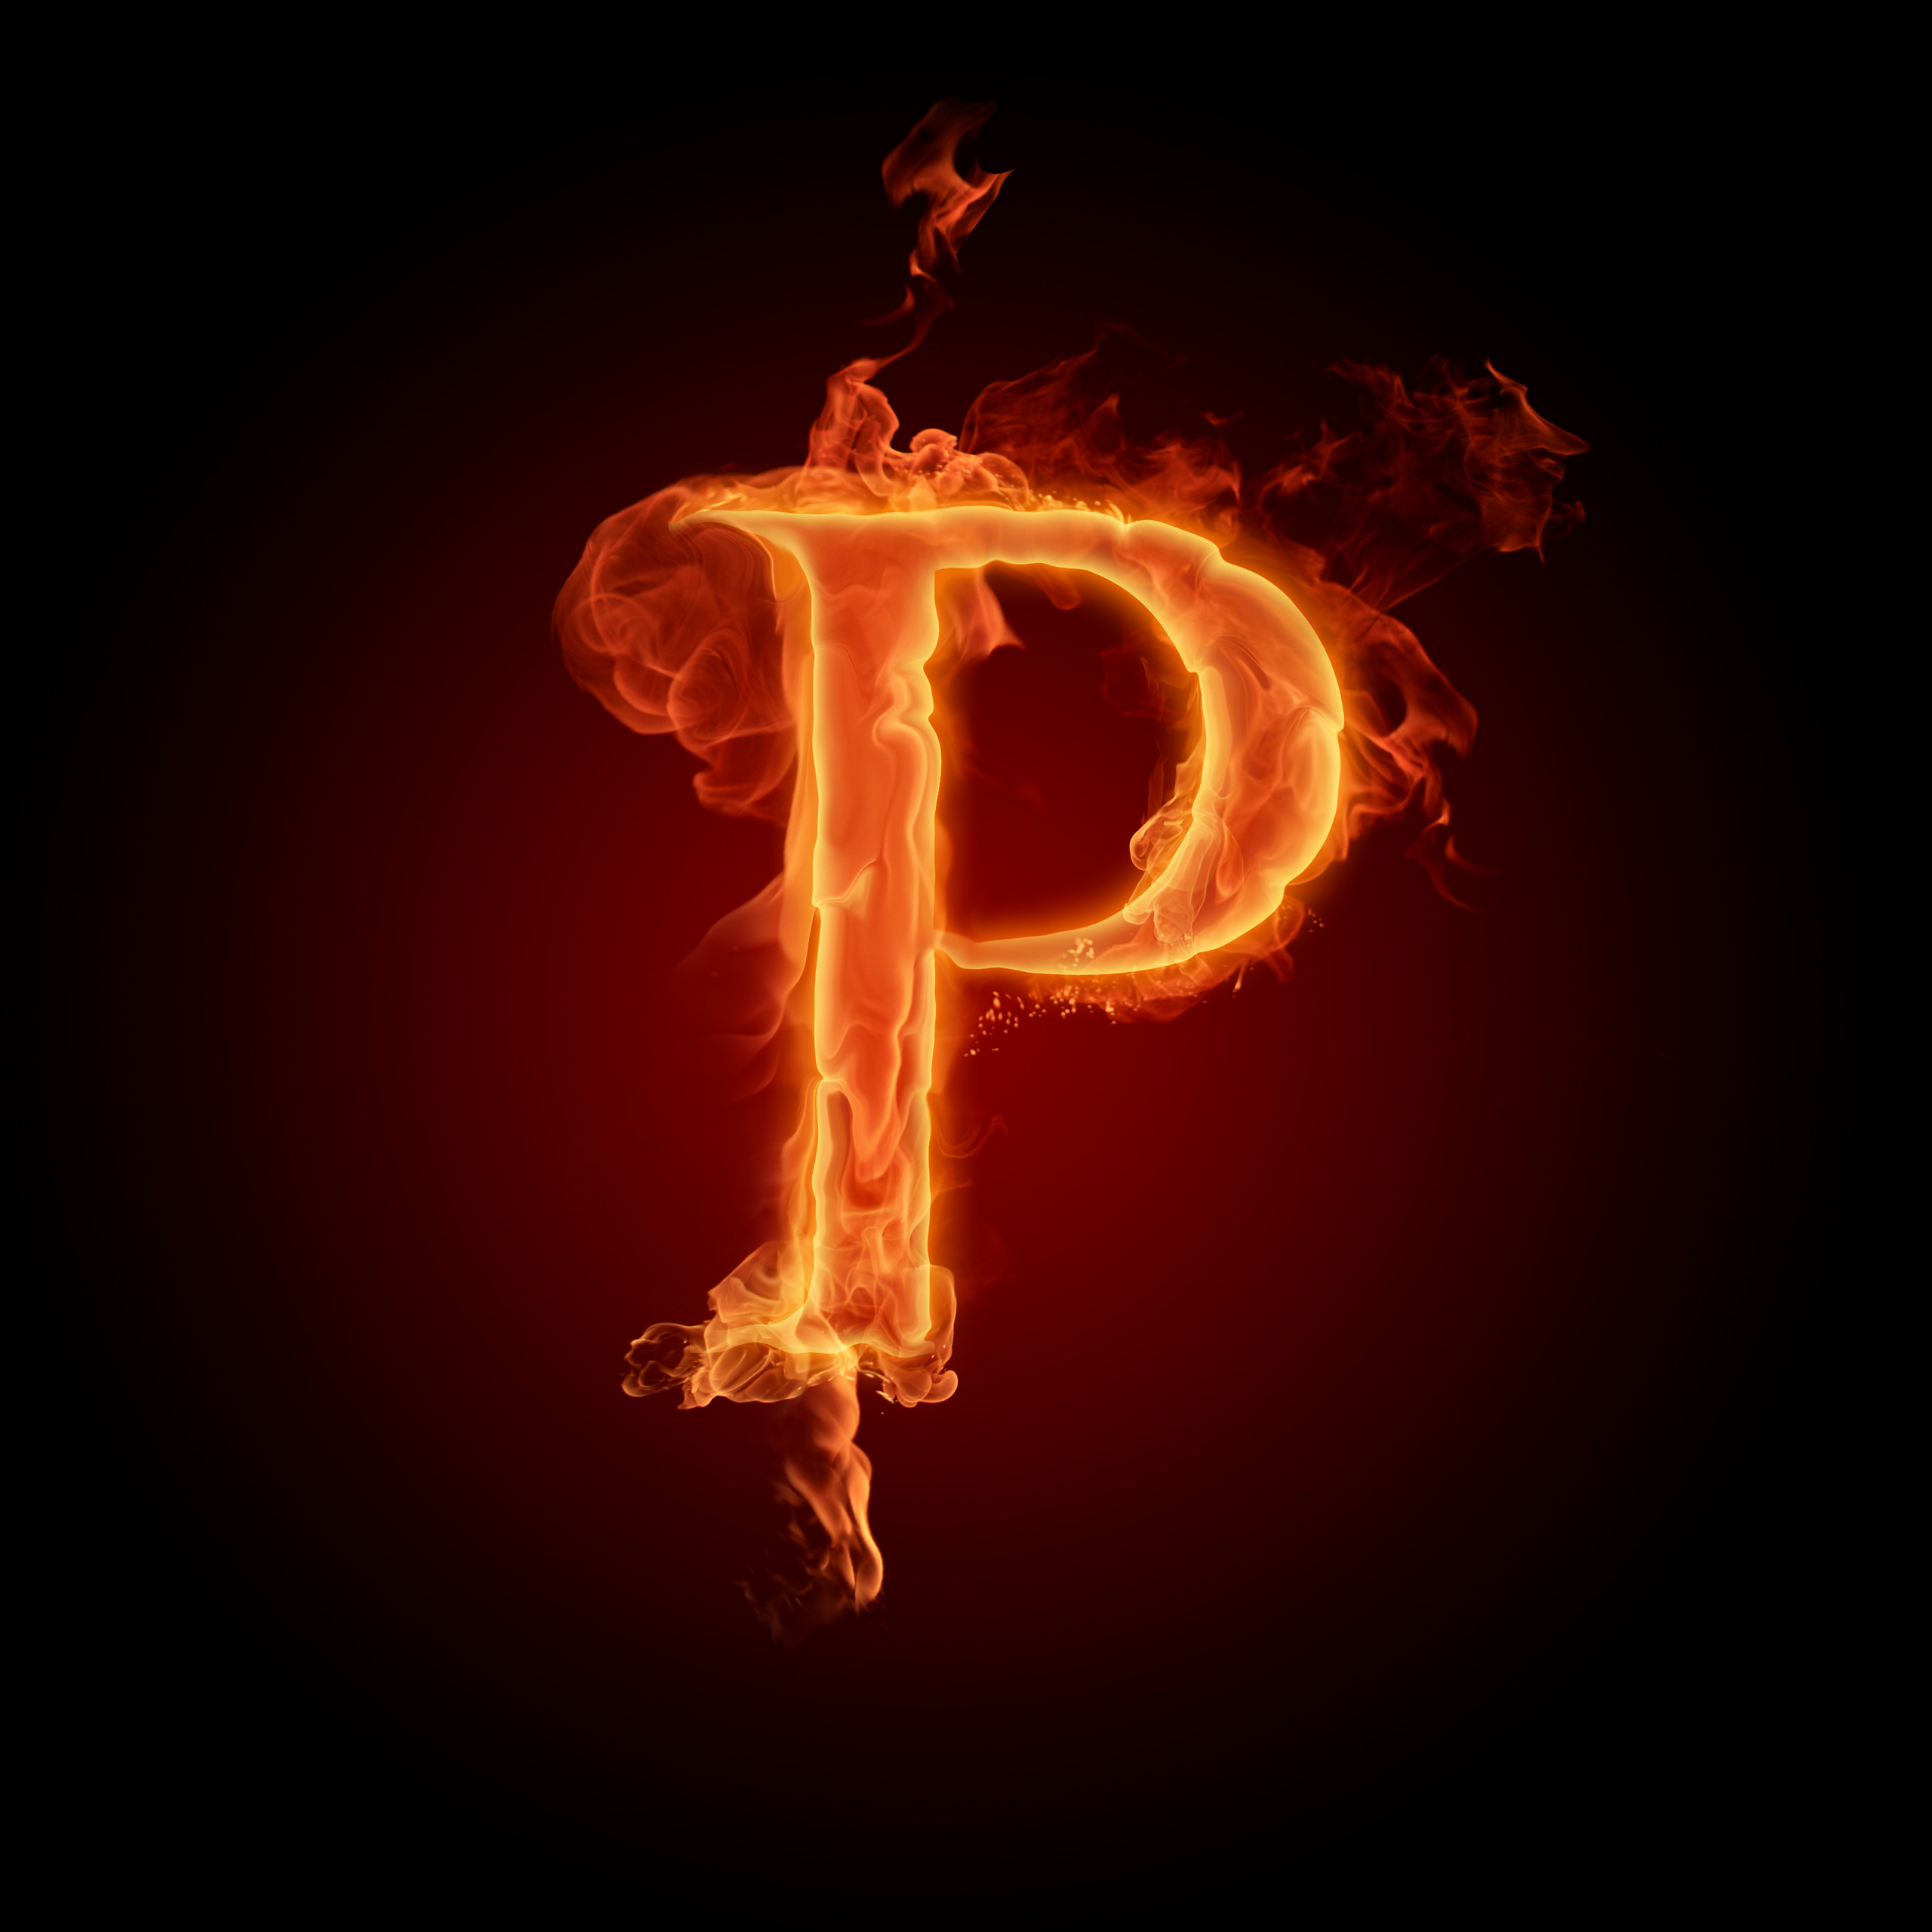 Superb The Letter P Images The Letter P HD Wallpaper And Background Photos In P&l Template